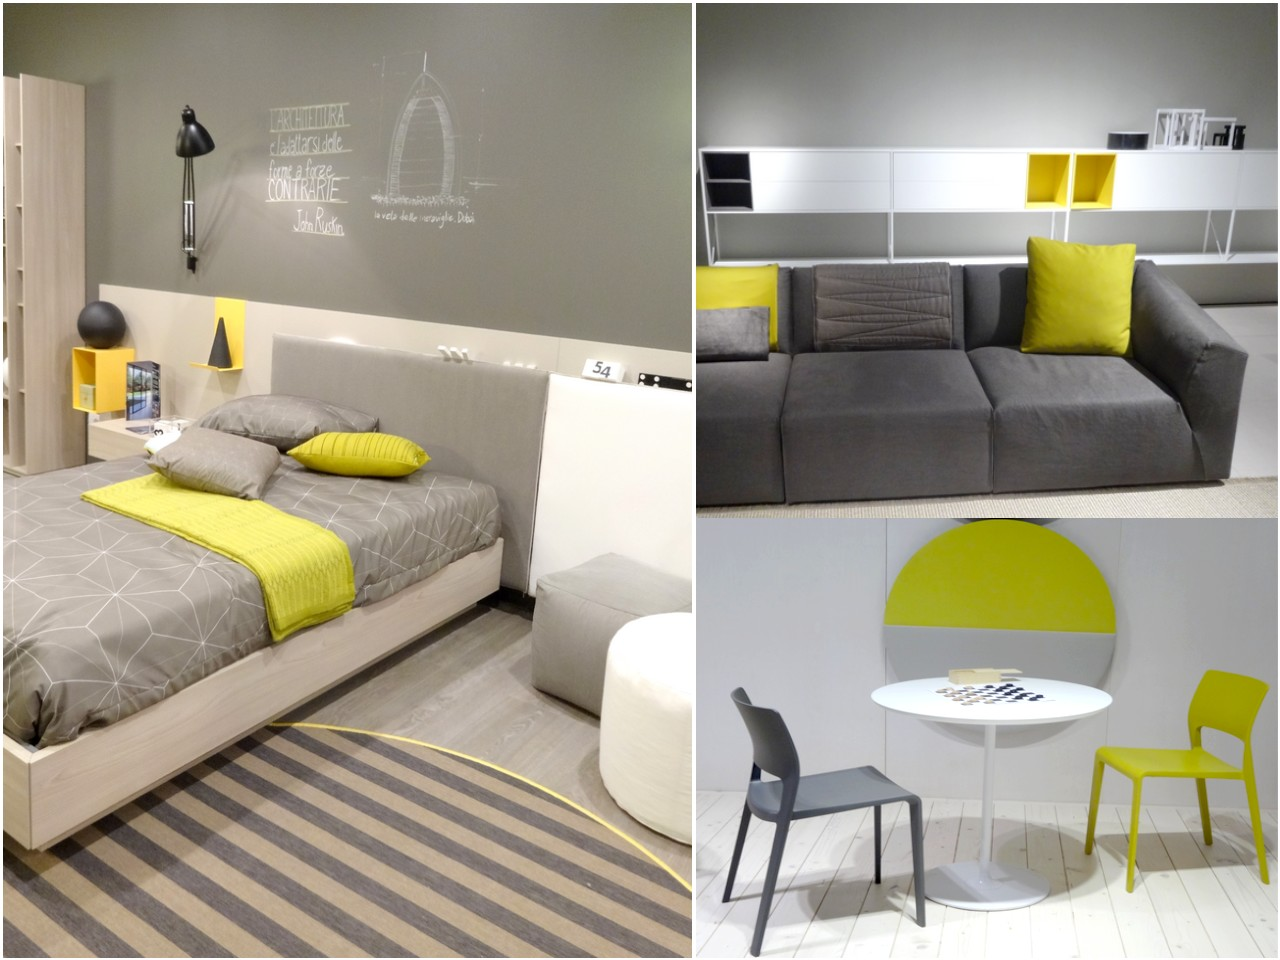 Tendencias decoraci n 2015 2016 mil n siempre sorprende for Tendencia en decoracion de interiores 2016